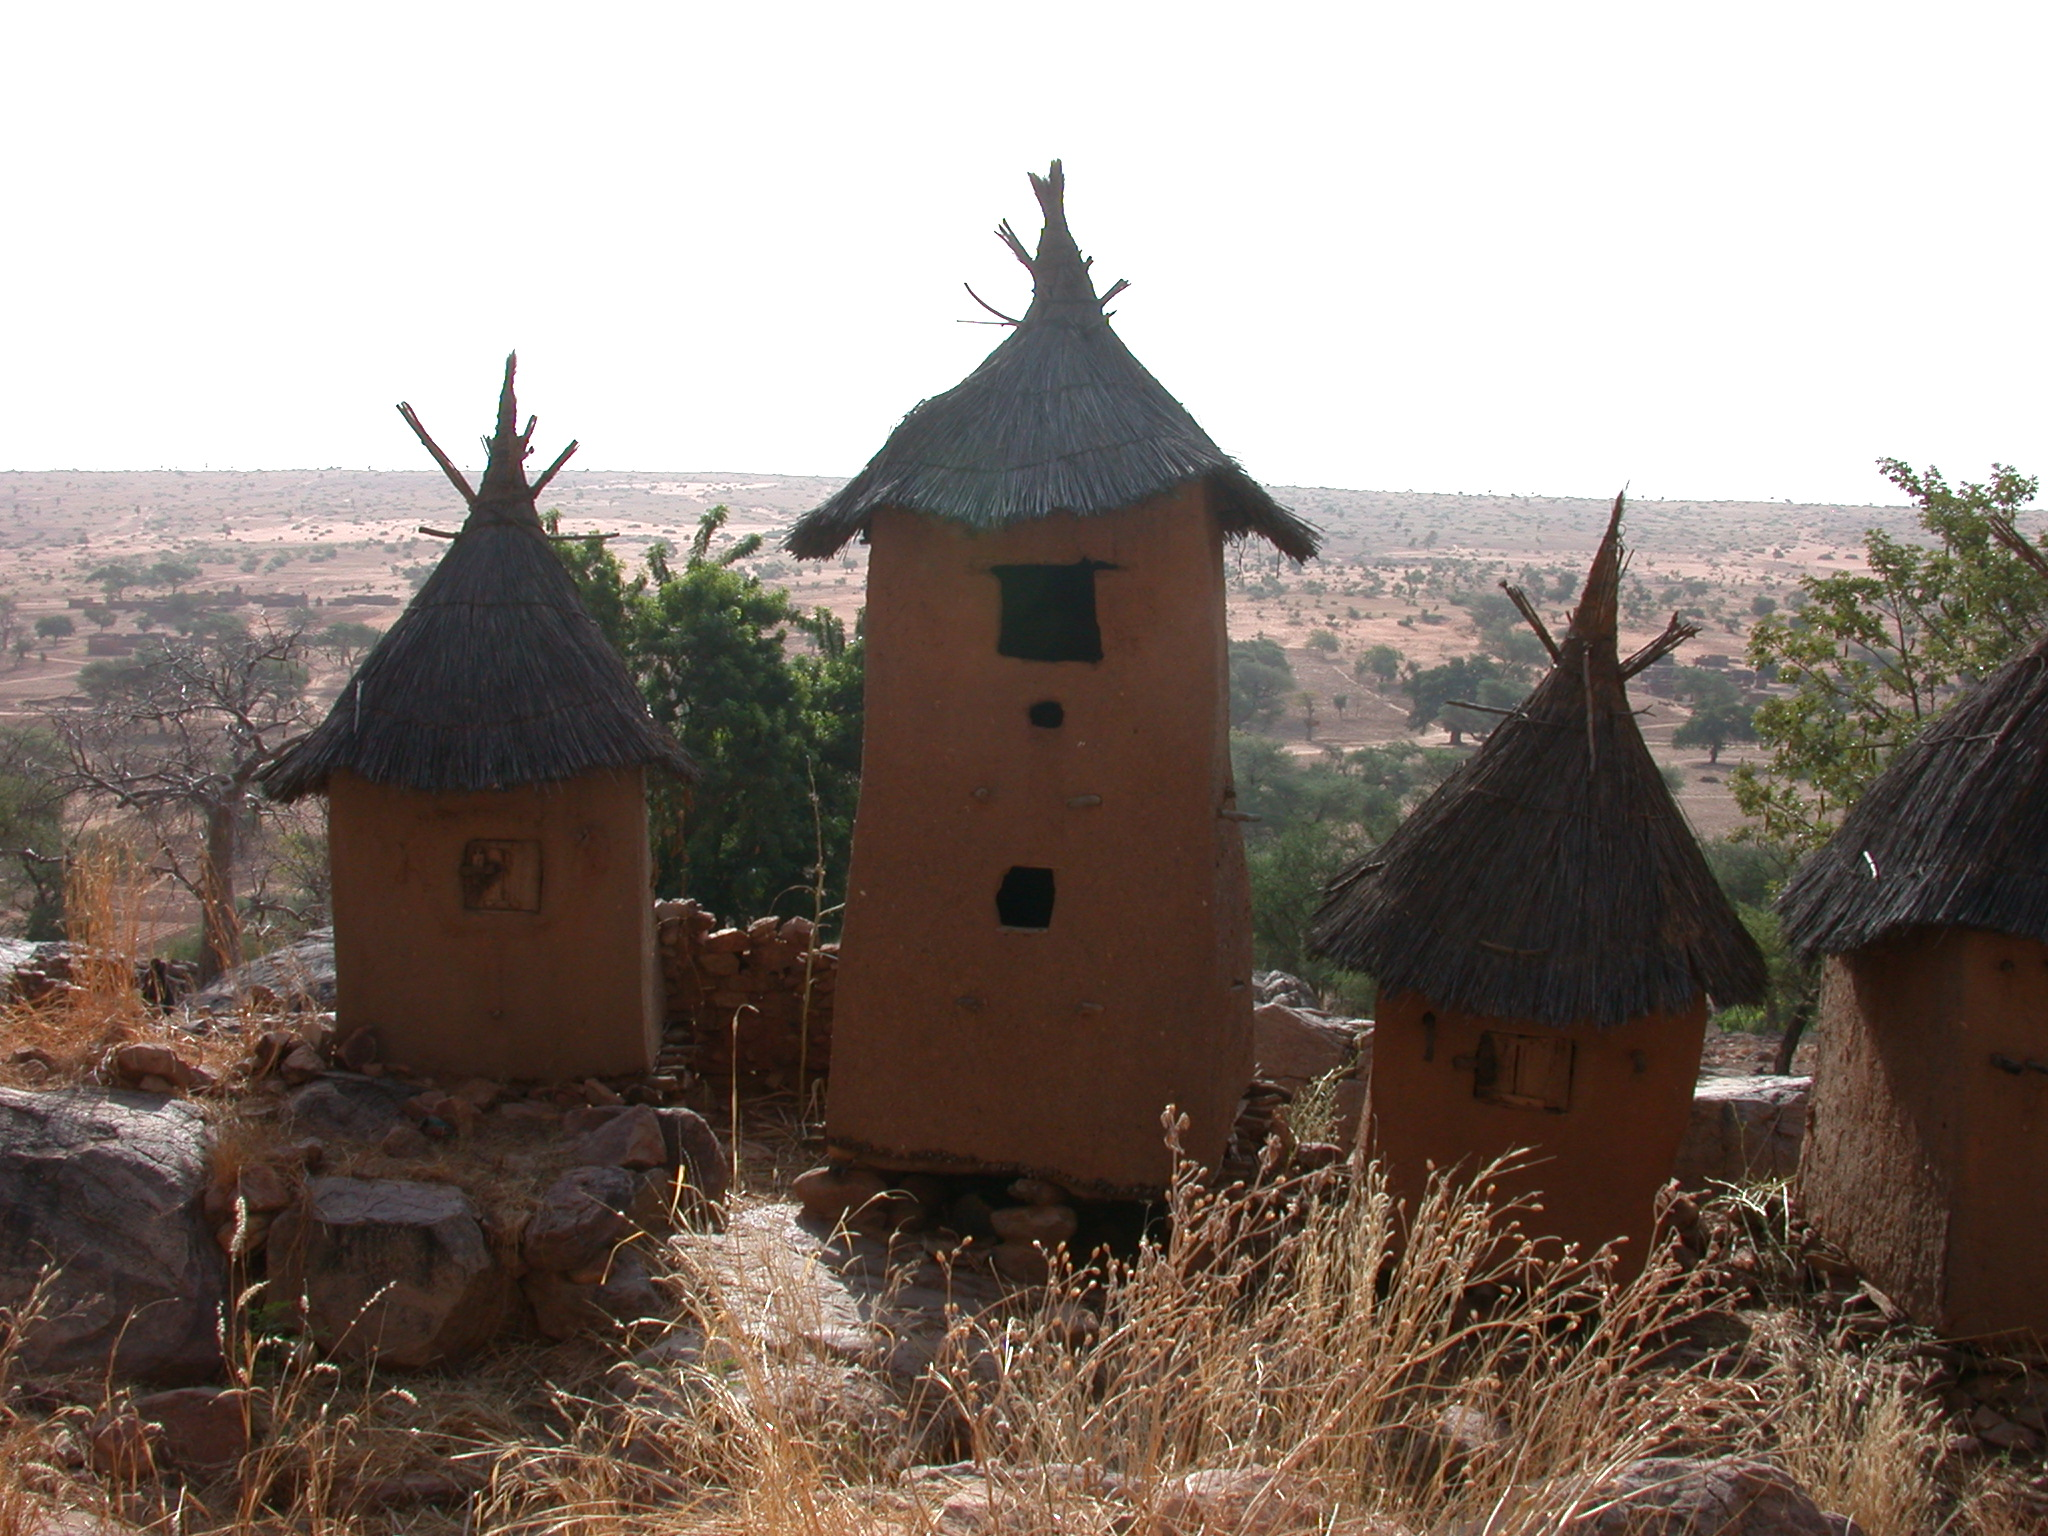 Ennde Village, Dogon Country, Mali